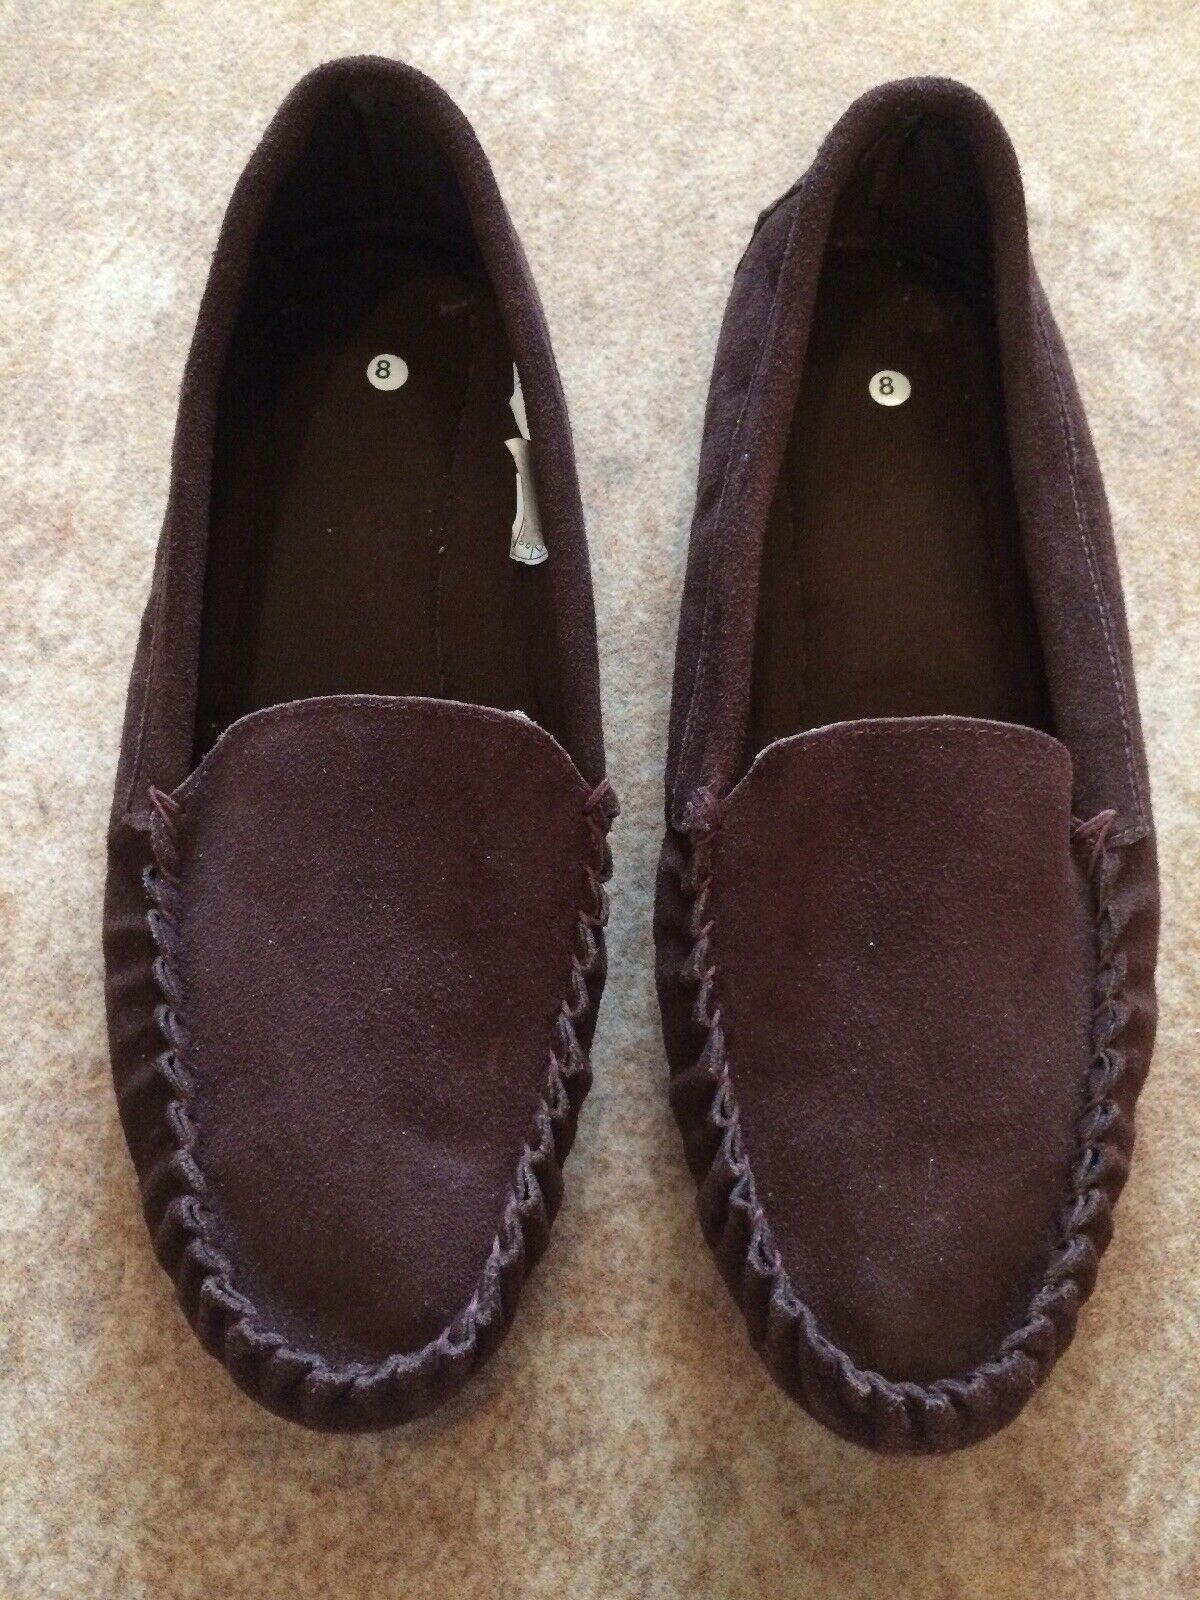 Men's Brown Leather Suede Loafer shoes Size 8